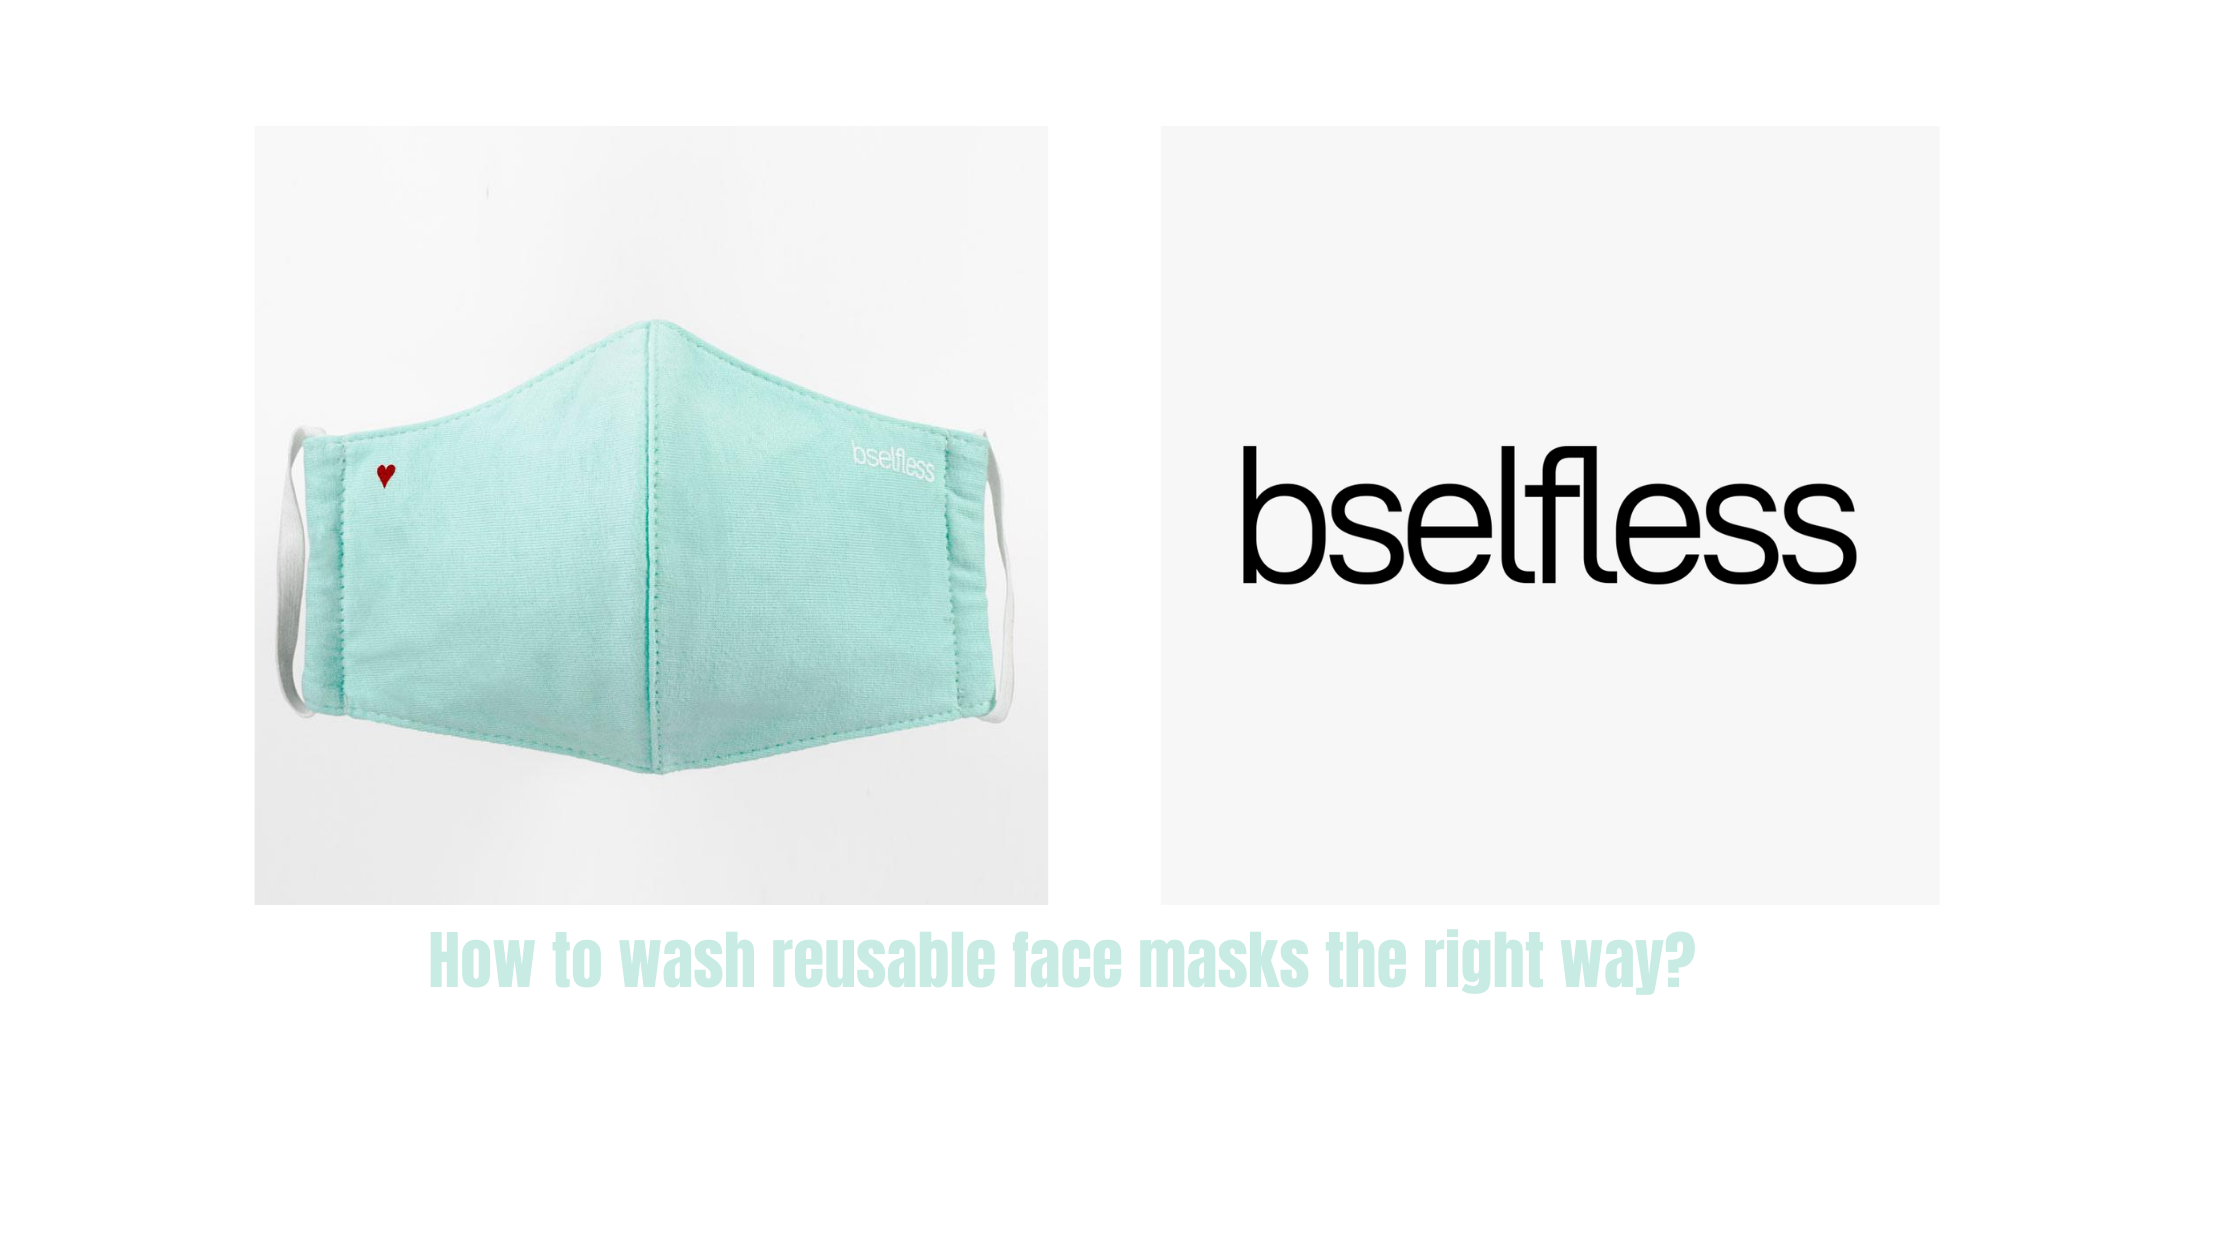 How to wash reusable face masks the right way?